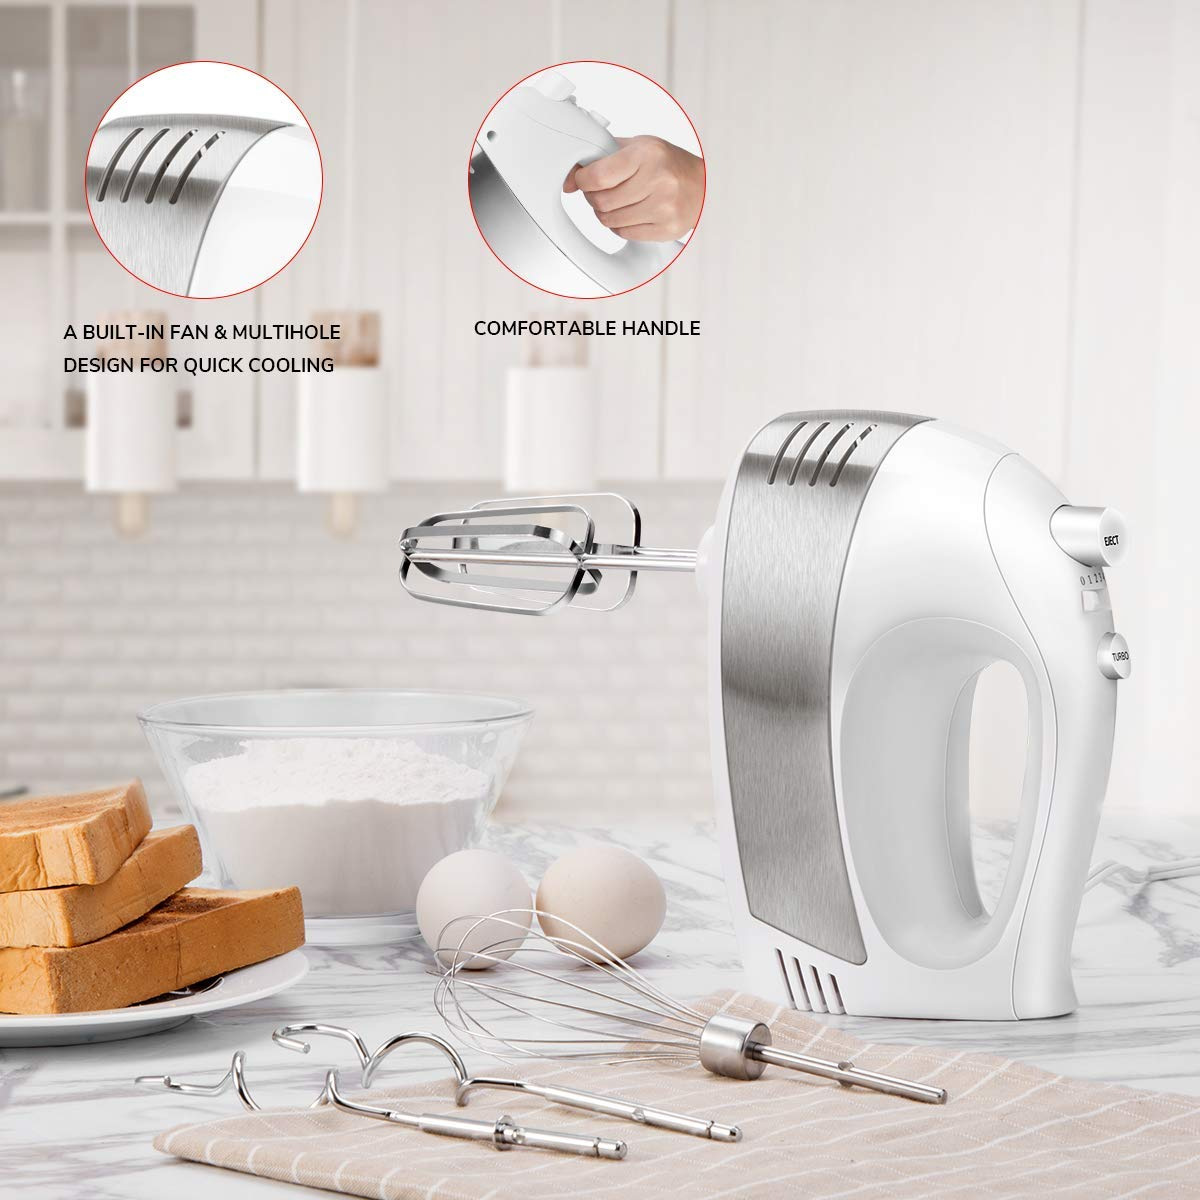 Hand Mixer with 5-Speed 250W Power Advantage Electric Handheld Mixer with Turbo and Easy Eject Button, Includes Storage Case Beaters Dough Hooks and Balloon Whisk, by KEEMO-White by KEEMO (Image #6)